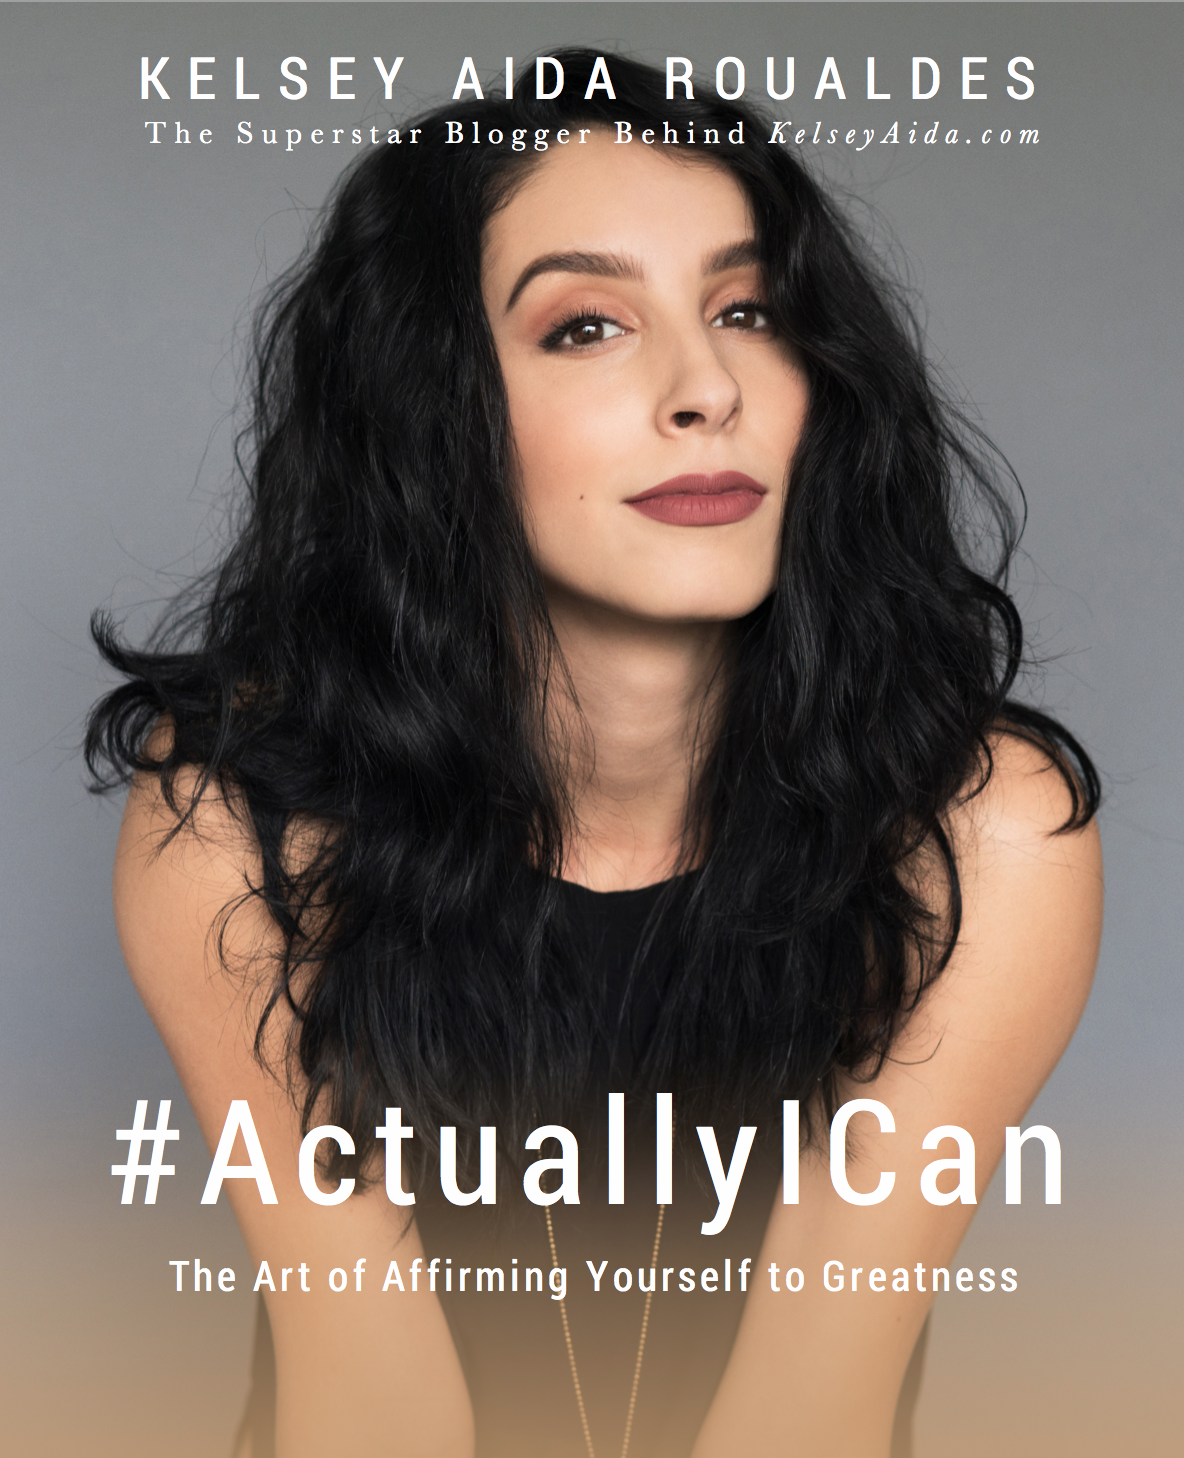 #ActuallyICan The Art of Affirming Yourself to Greatness